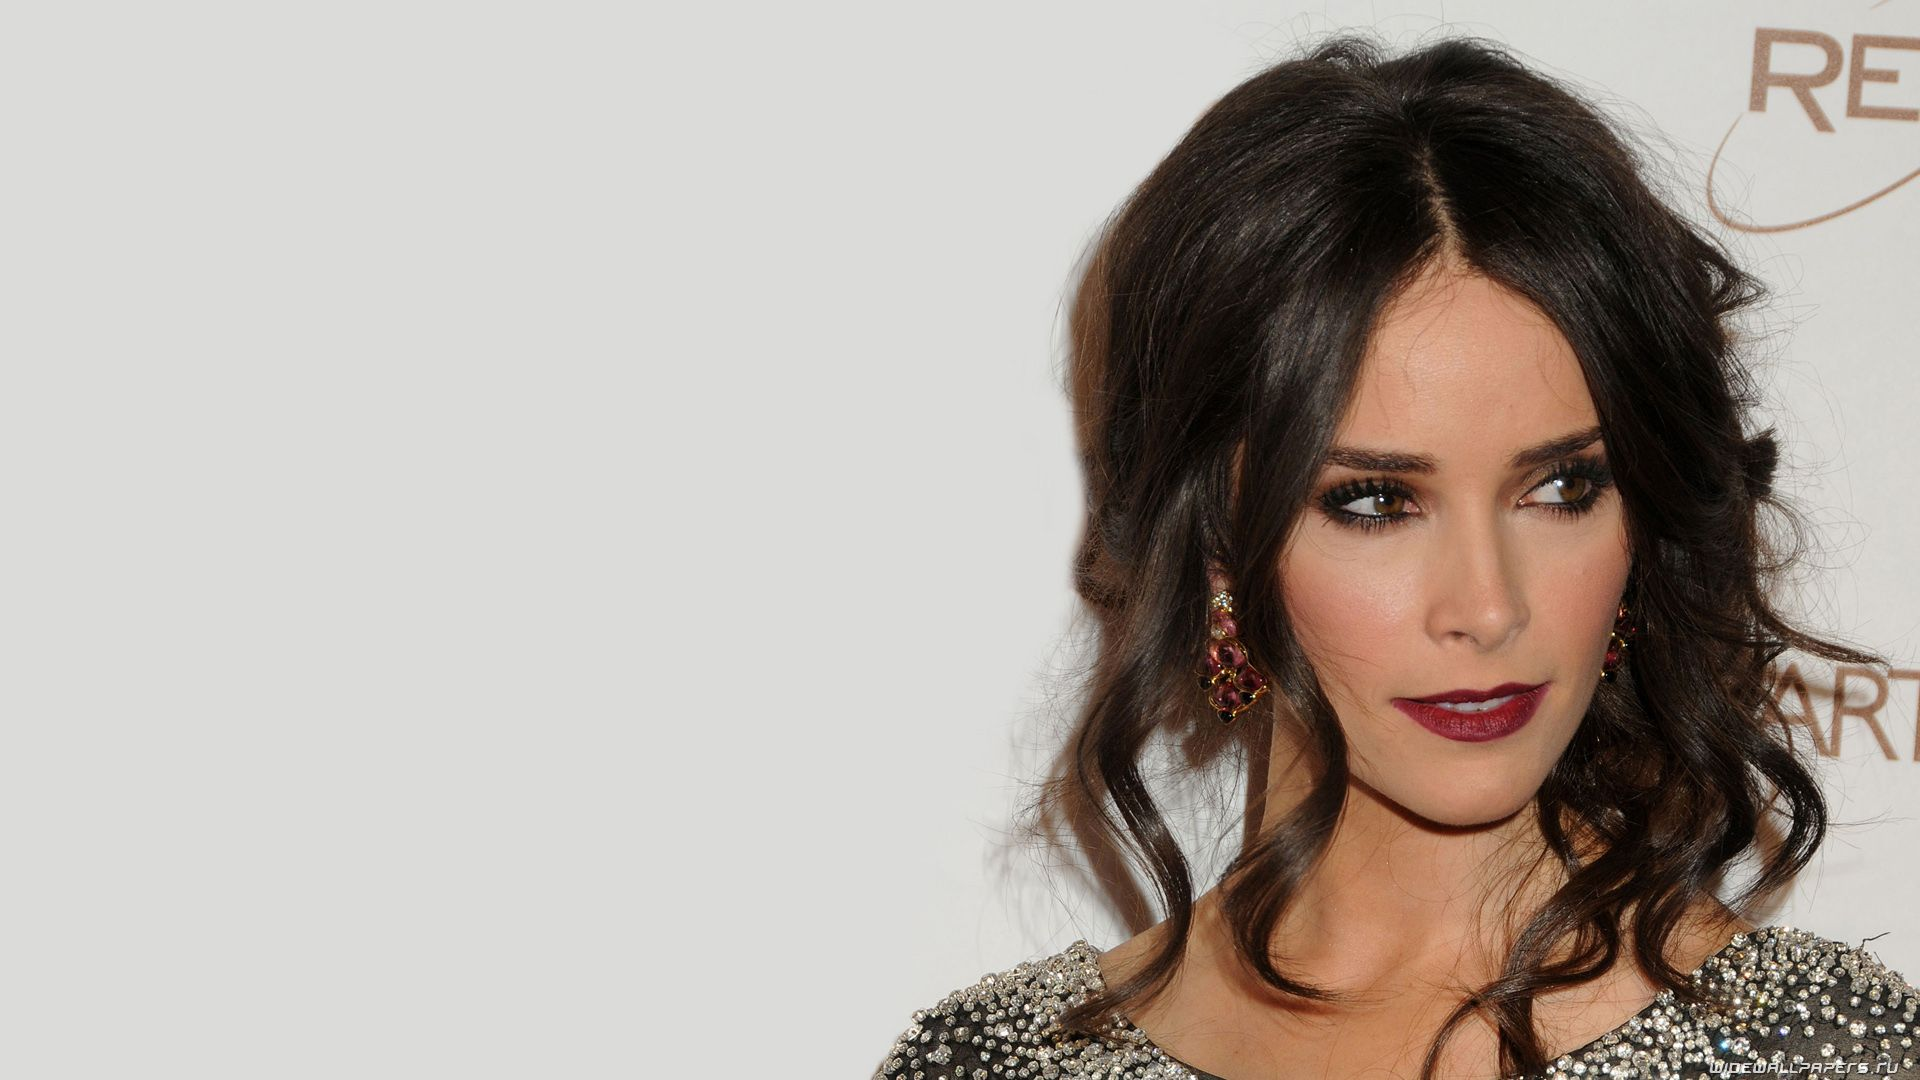 1920x1080 - Abigail Spencer Wallpapers 10